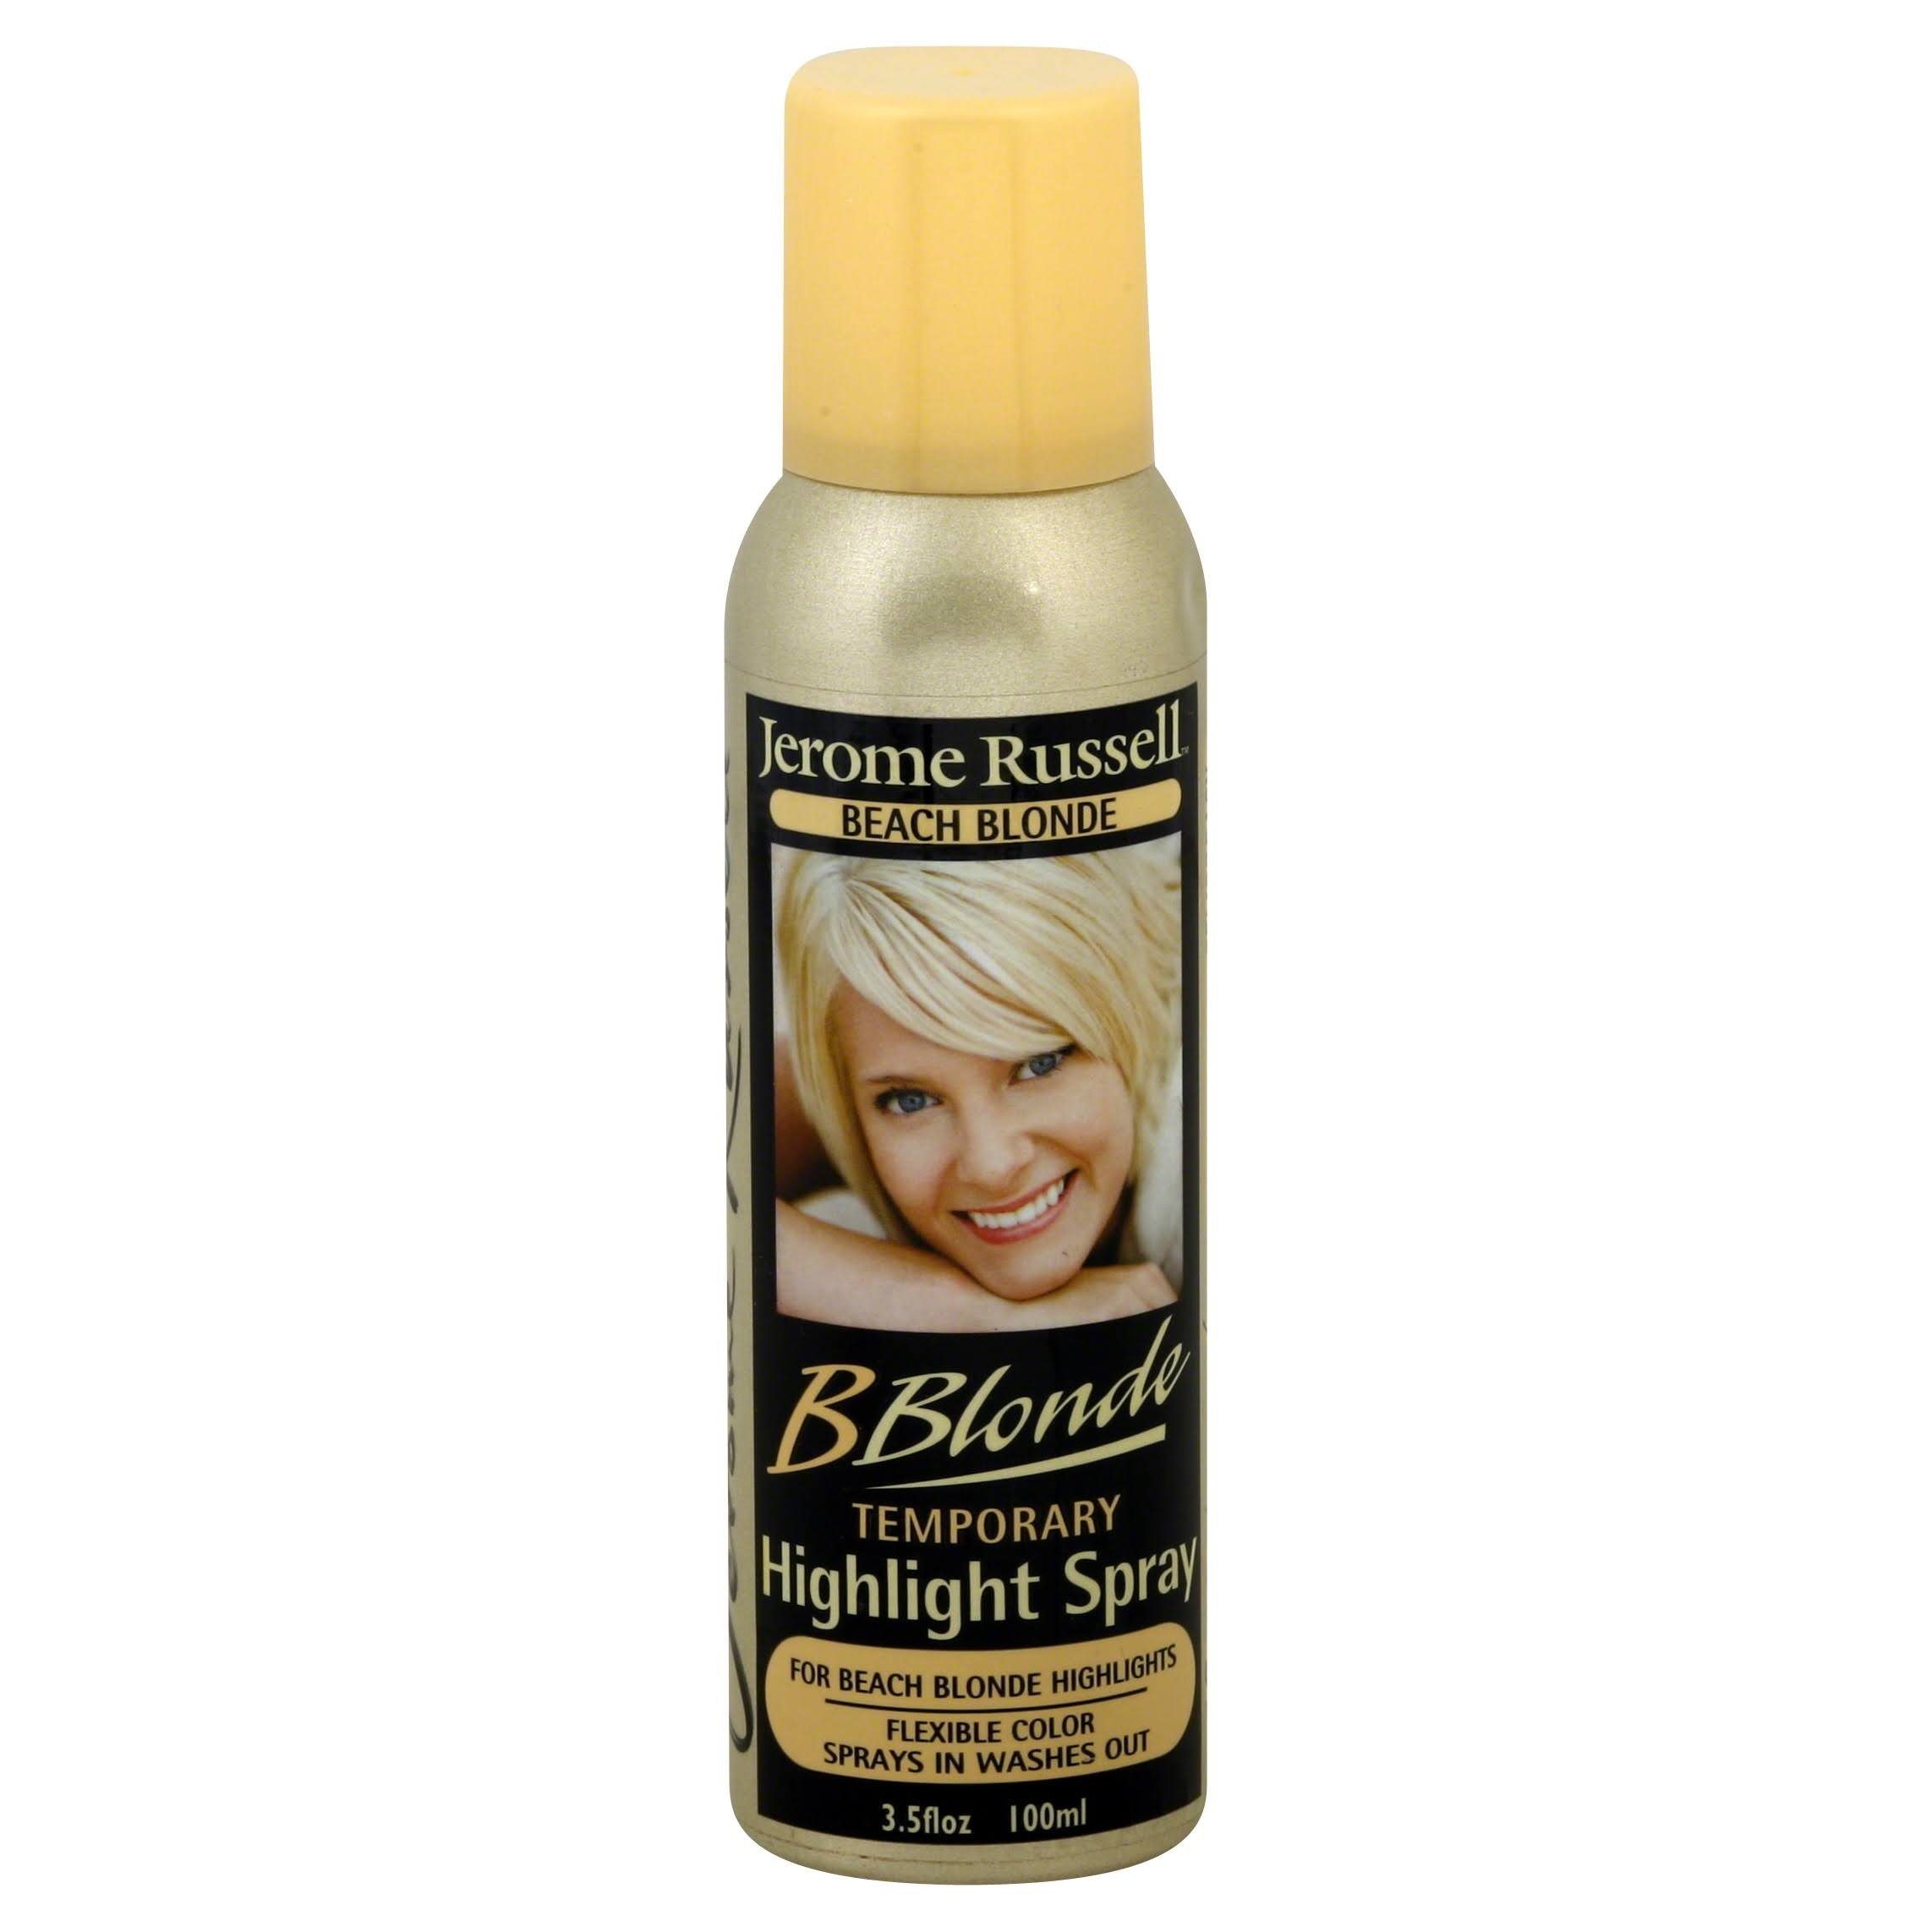 amazoncom jerome russell b blonde temporary highlight spray beach blonde 35 ounce hair highlighting products beauty